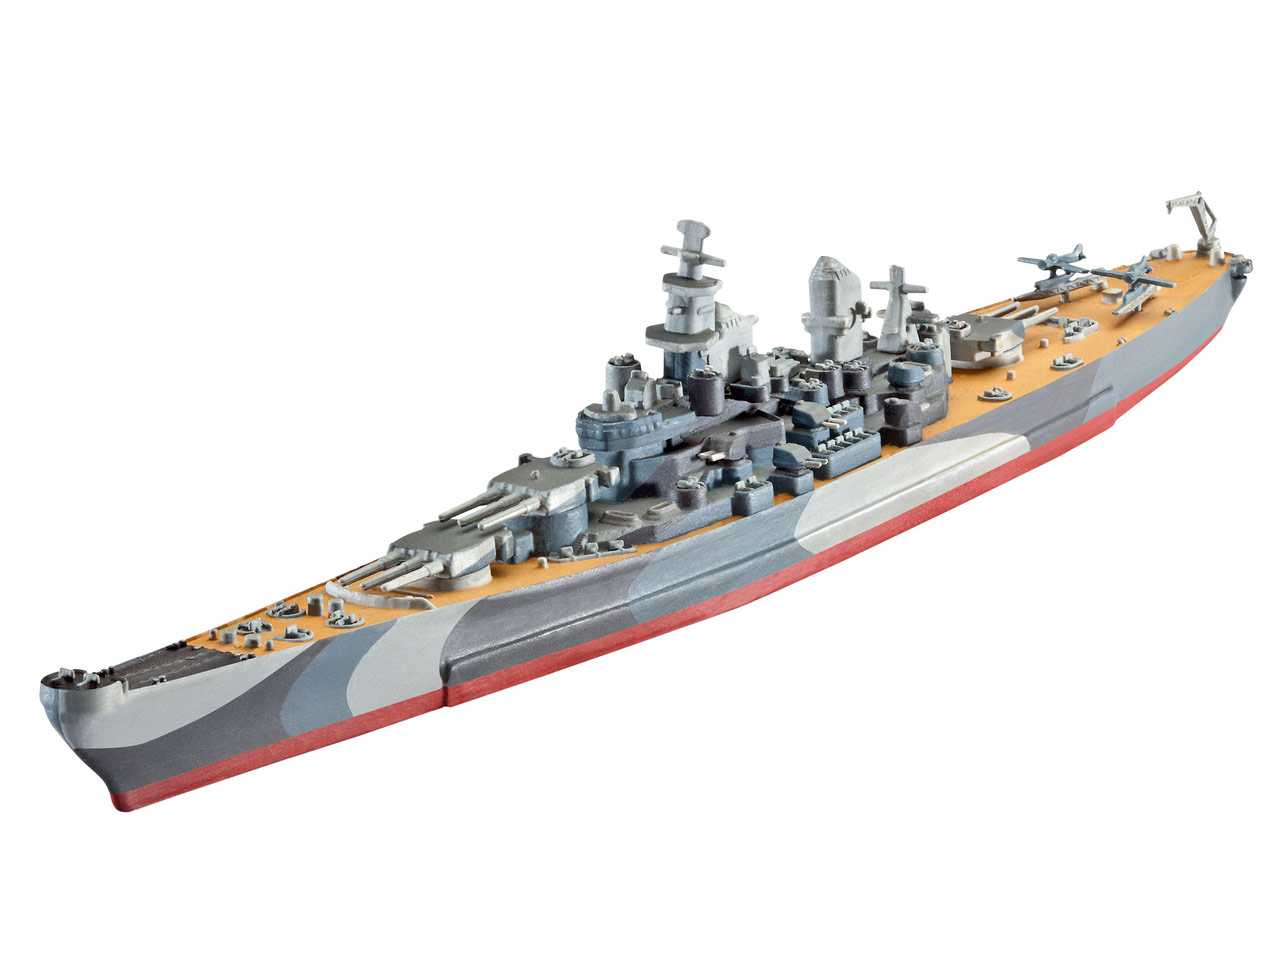 1:1200 Battleship U.S.S. Missouri (Model Set)